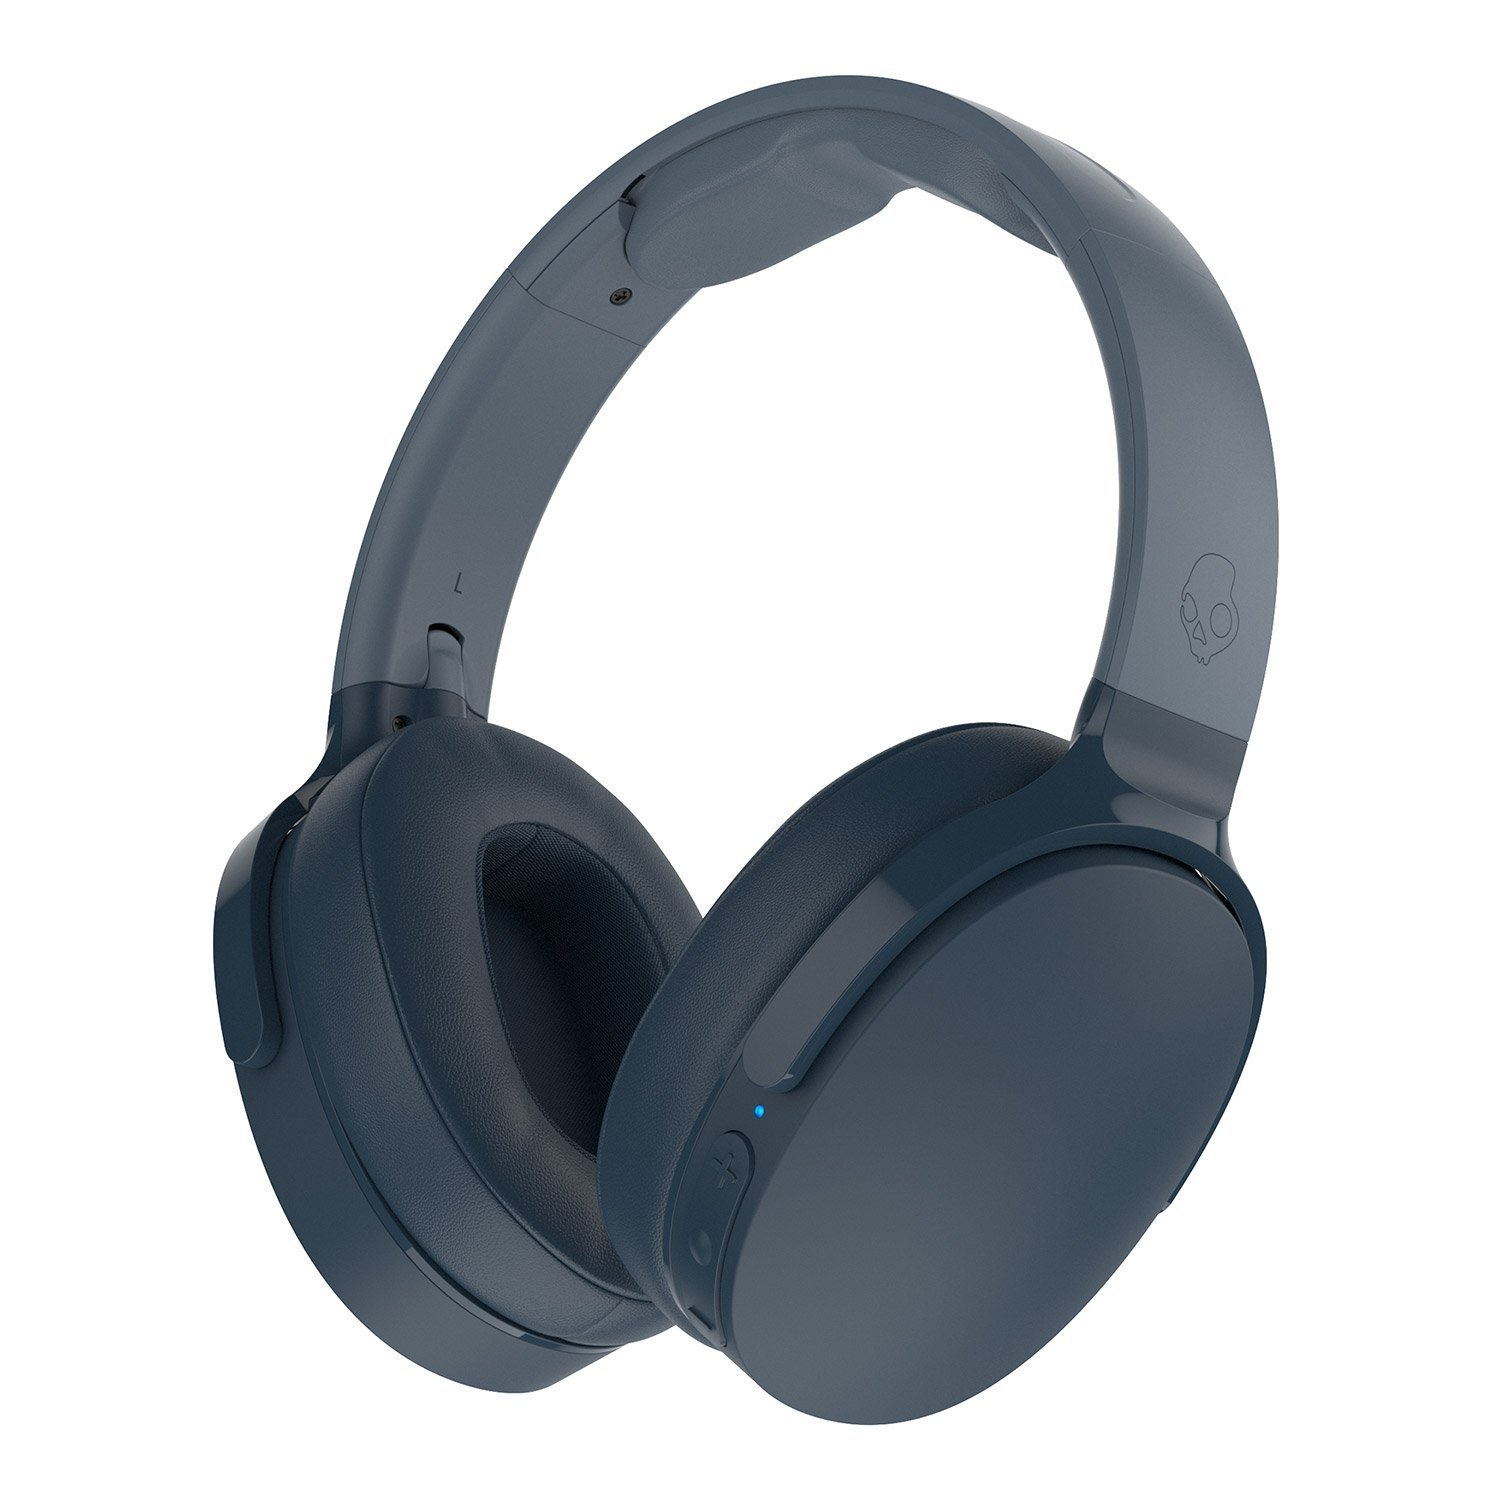 Skullcandy Hesh 3 Foldable Wireless Bluetooth Over-Ear Headphones with Microphone, 22-Hour Battery Life, & Memory Foam Ear Cushions (Blue)